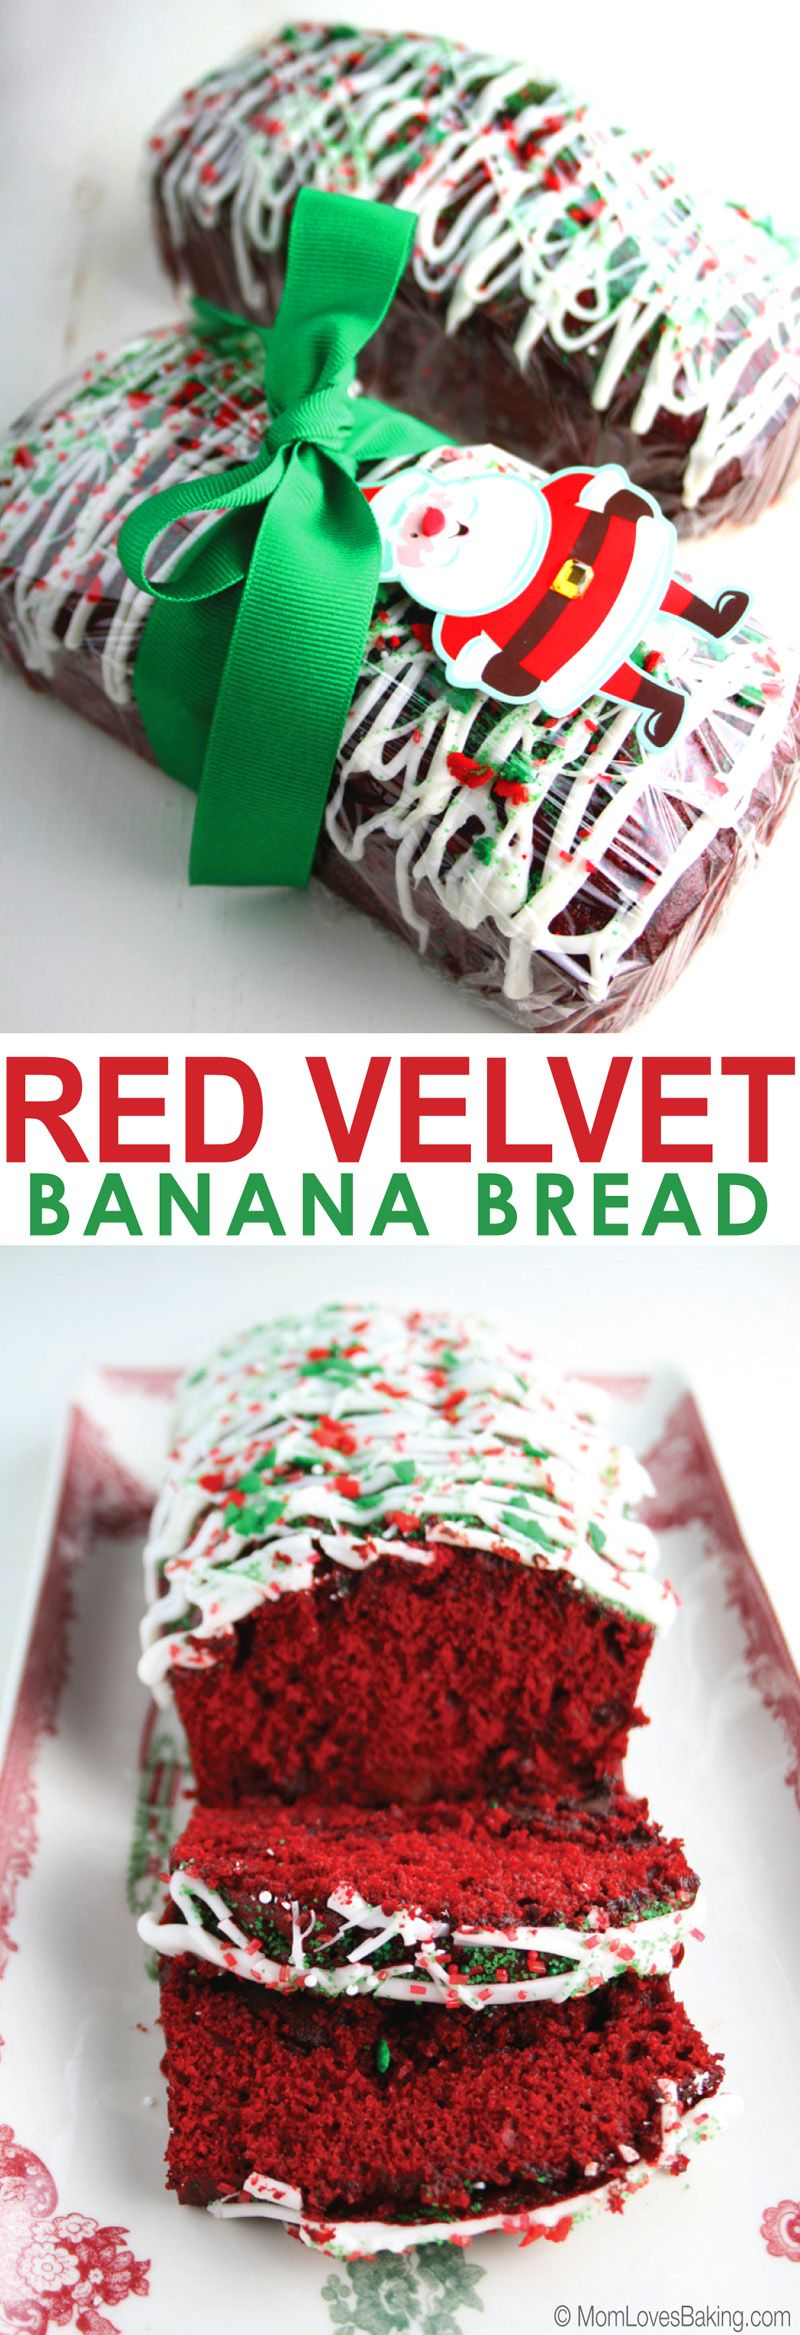 It S Like Banana Bread And Red Velvet Cake All At The Same Time Plus Drizzled With White Chocolate Sprinkled Christmas Cheer